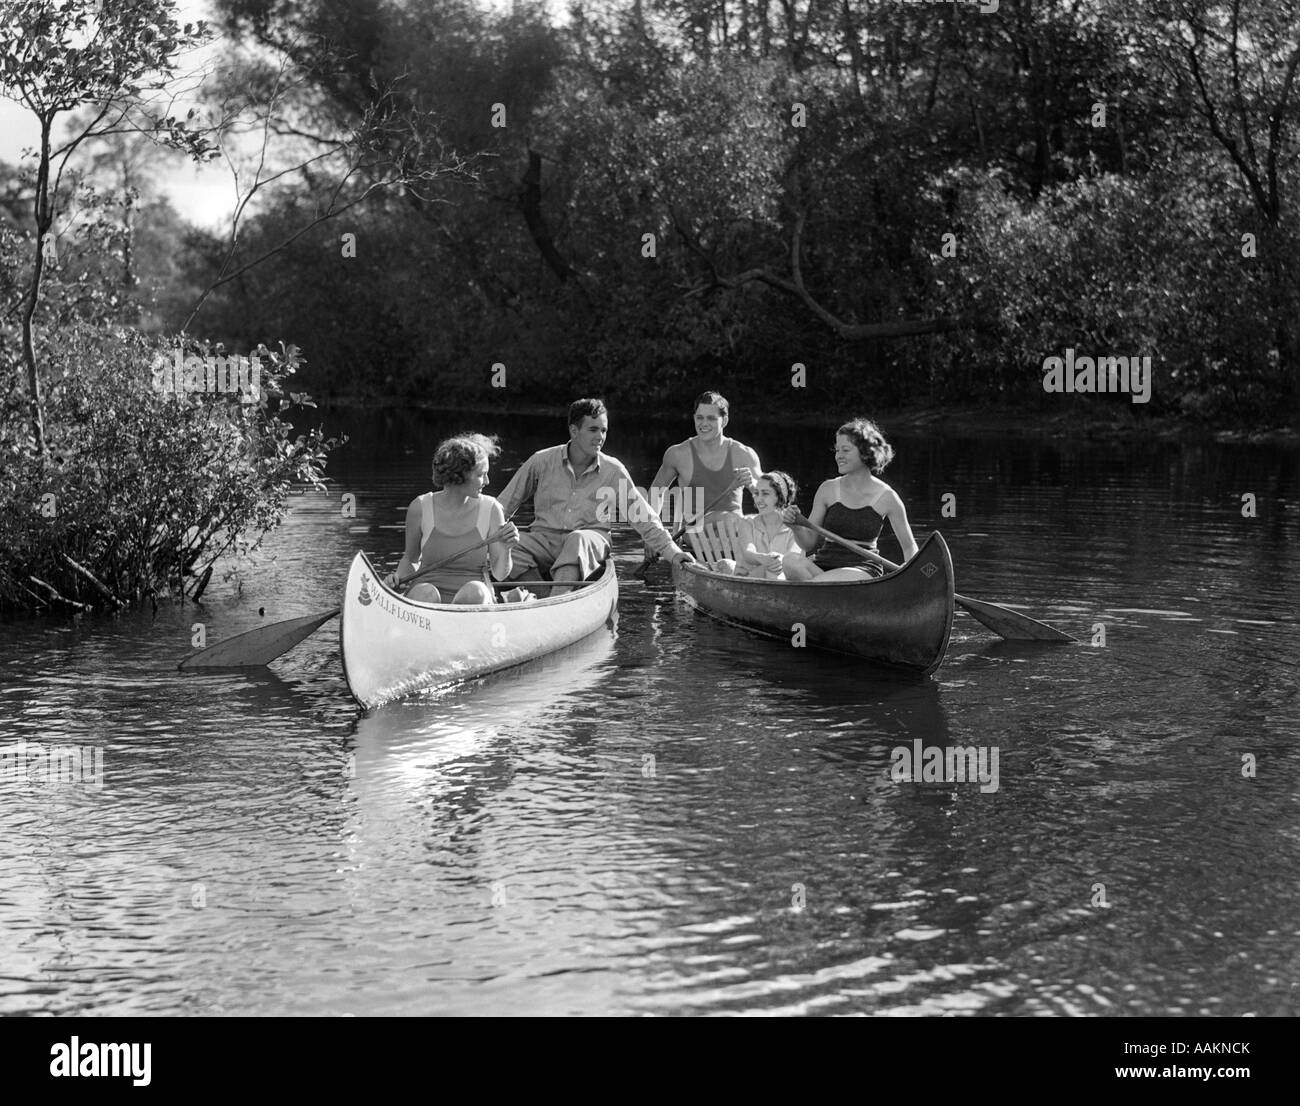 1930s SUMMERTIME GROUP OF FIVE YOUNG MEN & WOMEN IN TWO CANOES PADDLING DOWN A STREAM - Stock Image